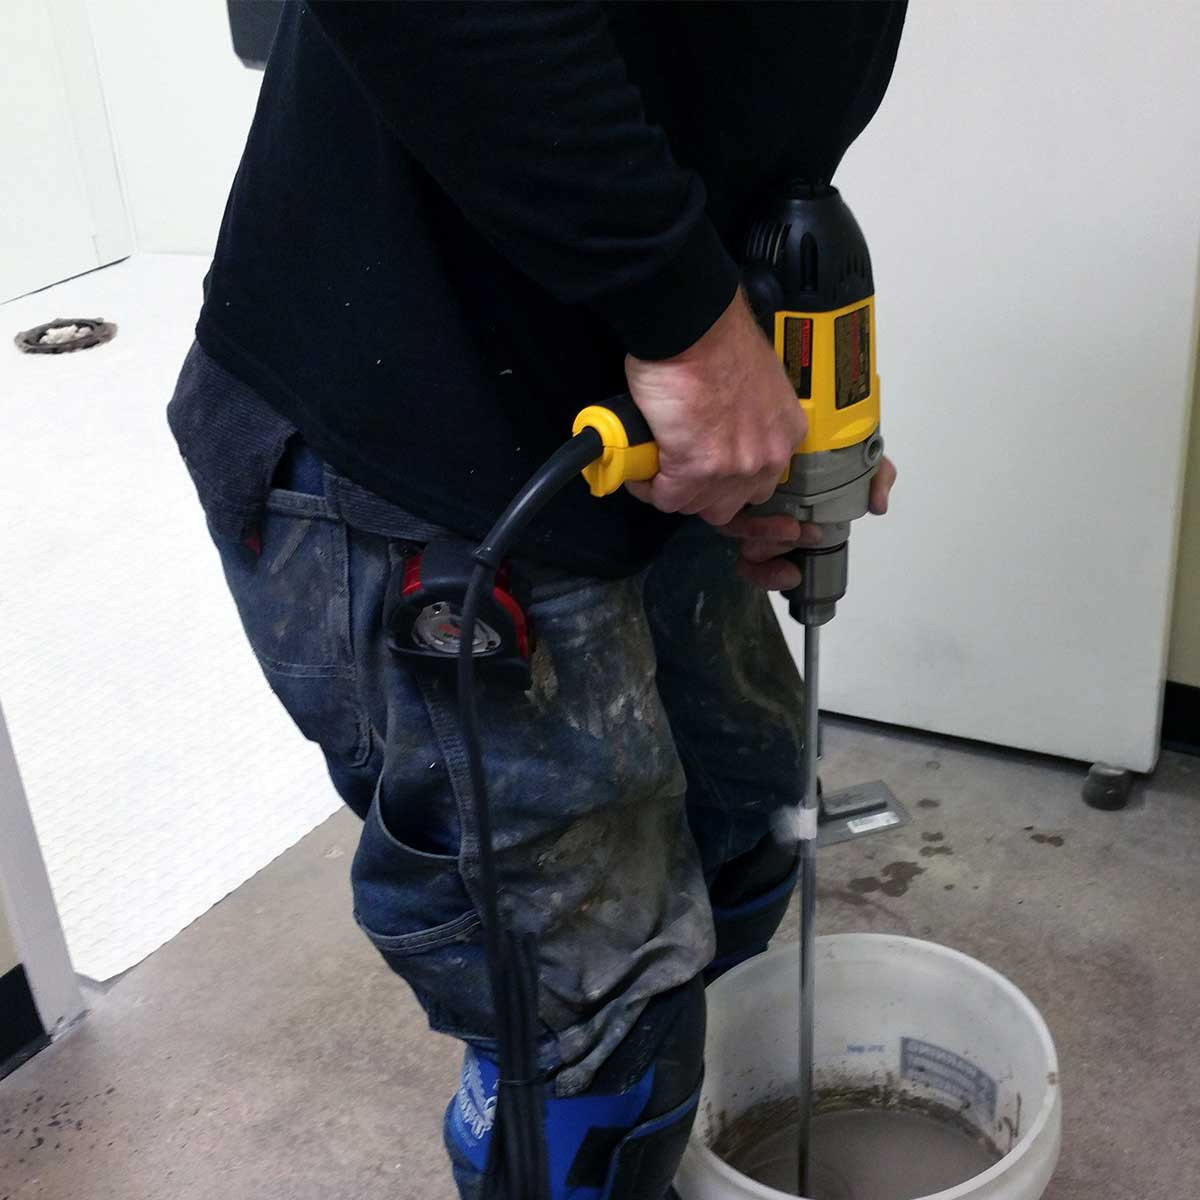 Dewalt variable speed drill mixing grout